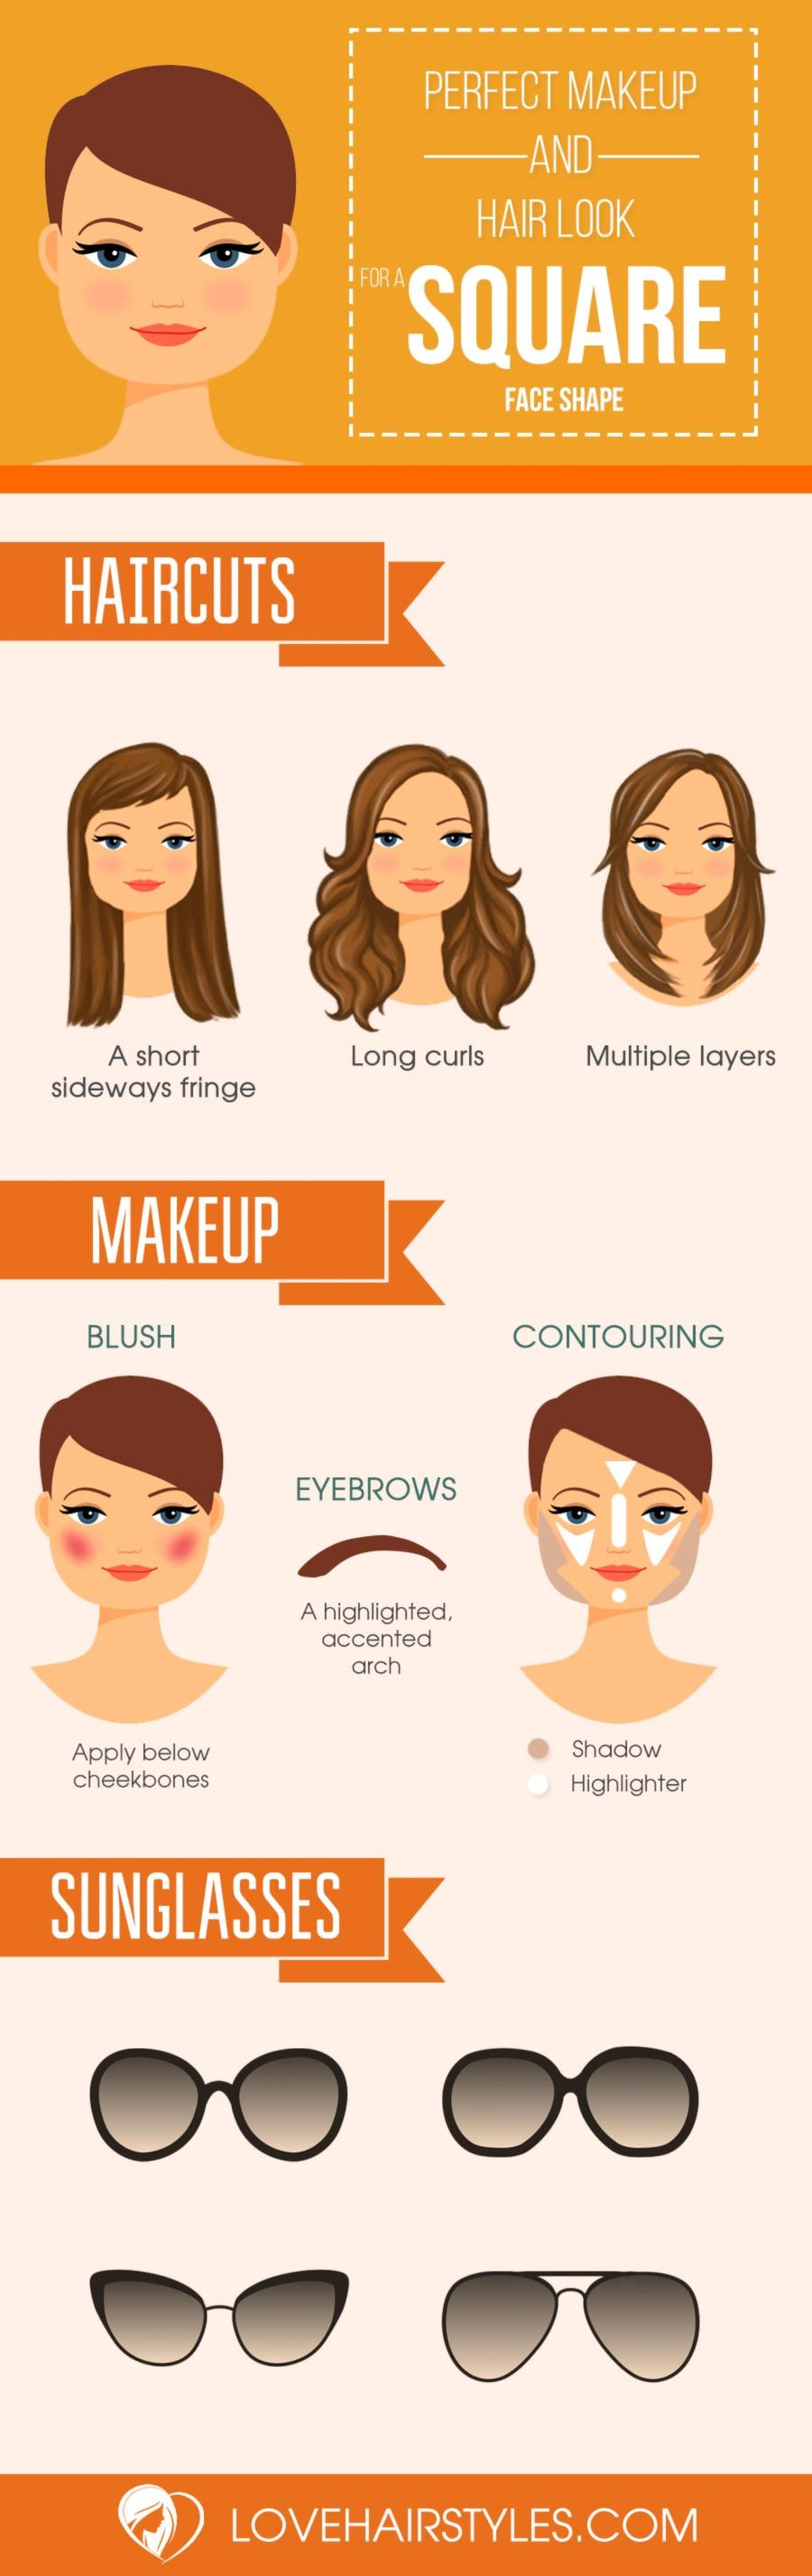 sexy hairstyles for square faces squares face and makeup